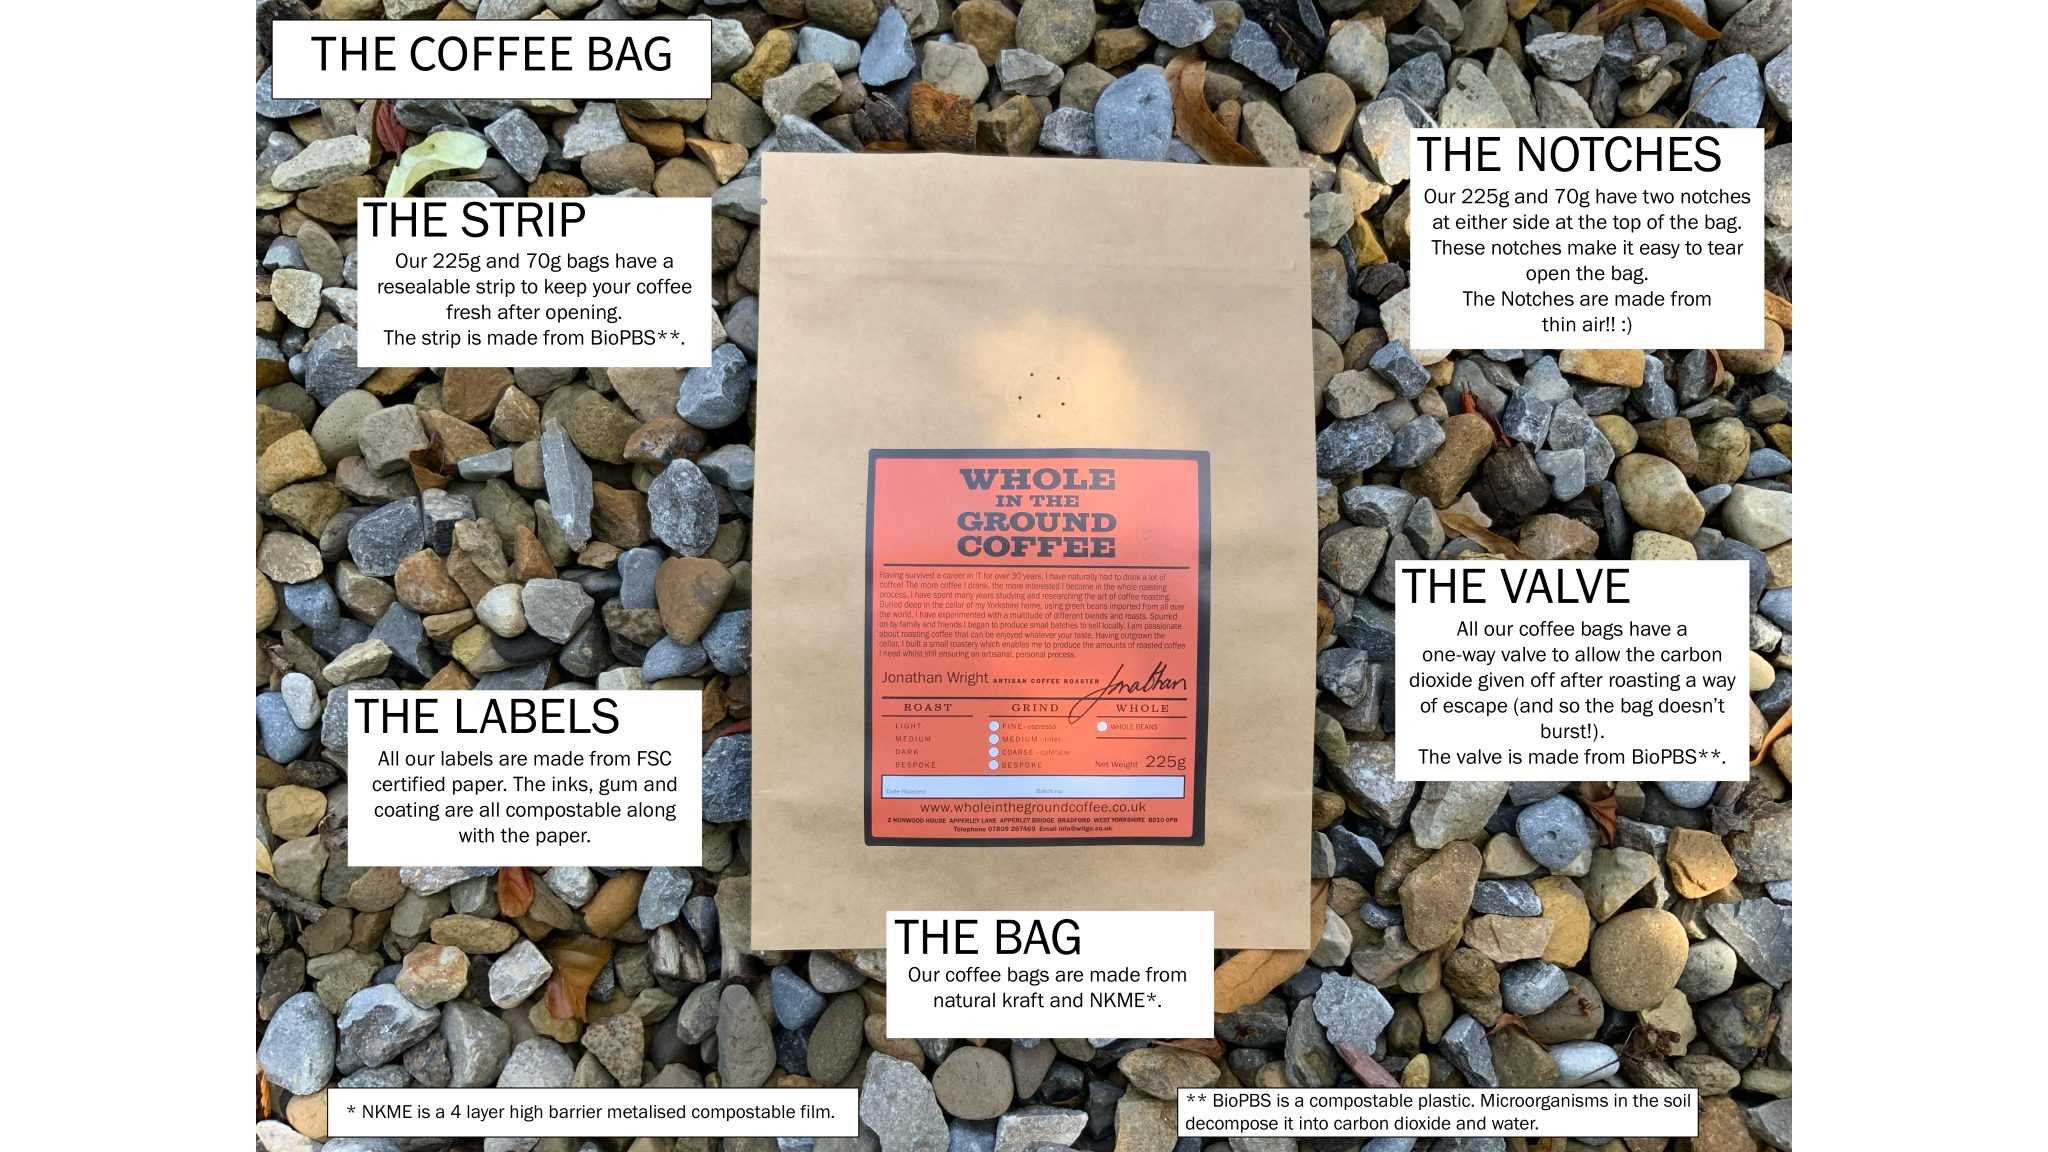 The Home Compostable Coffee Bag - What it is made up of.